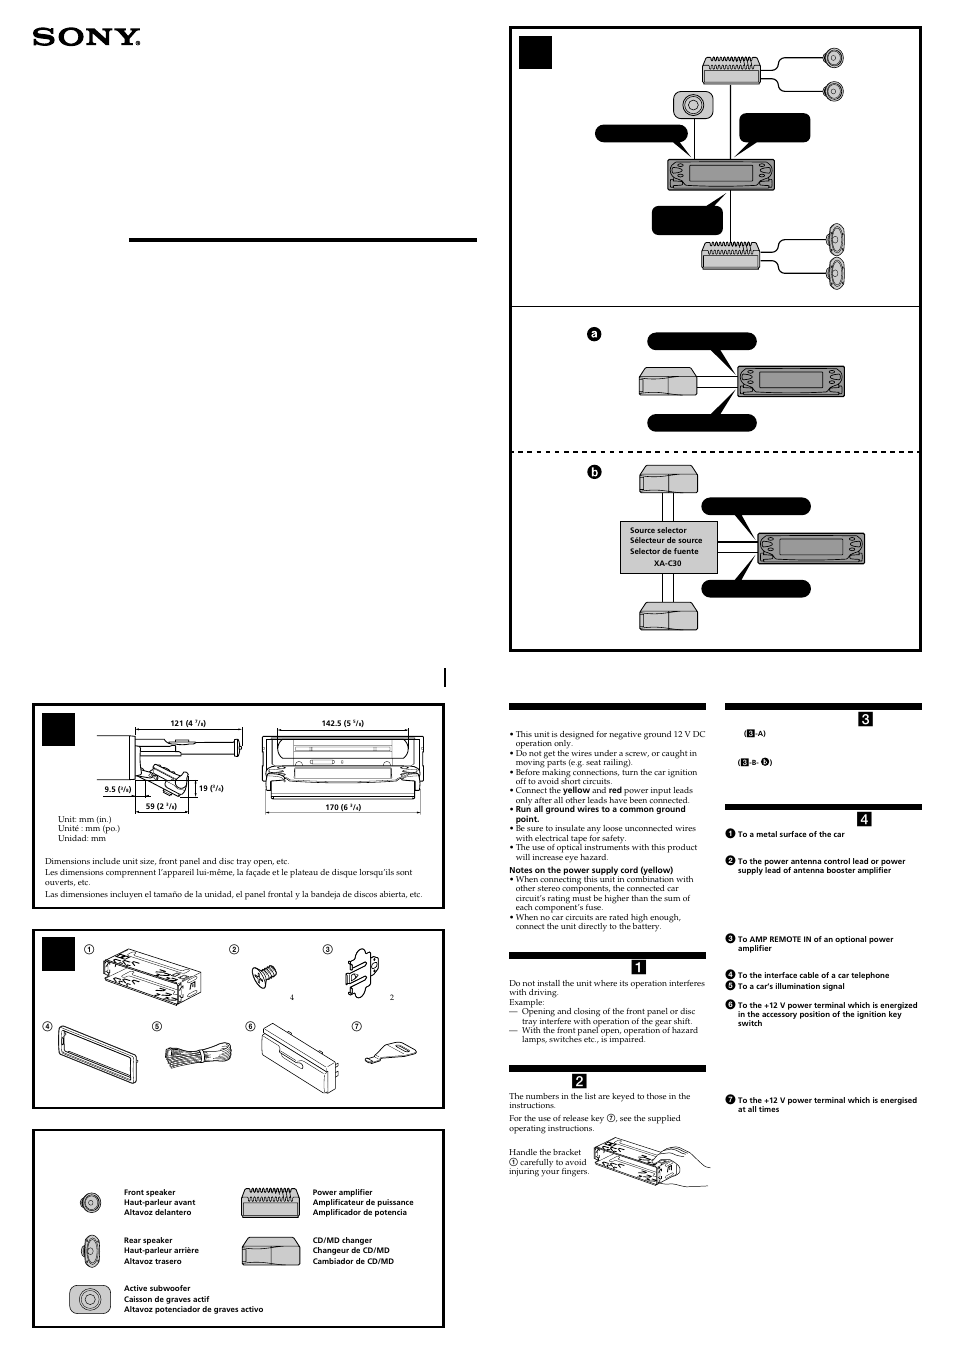 medium resolution of sony mex 5di user manual 4 pages wiring harness sony mex 5di